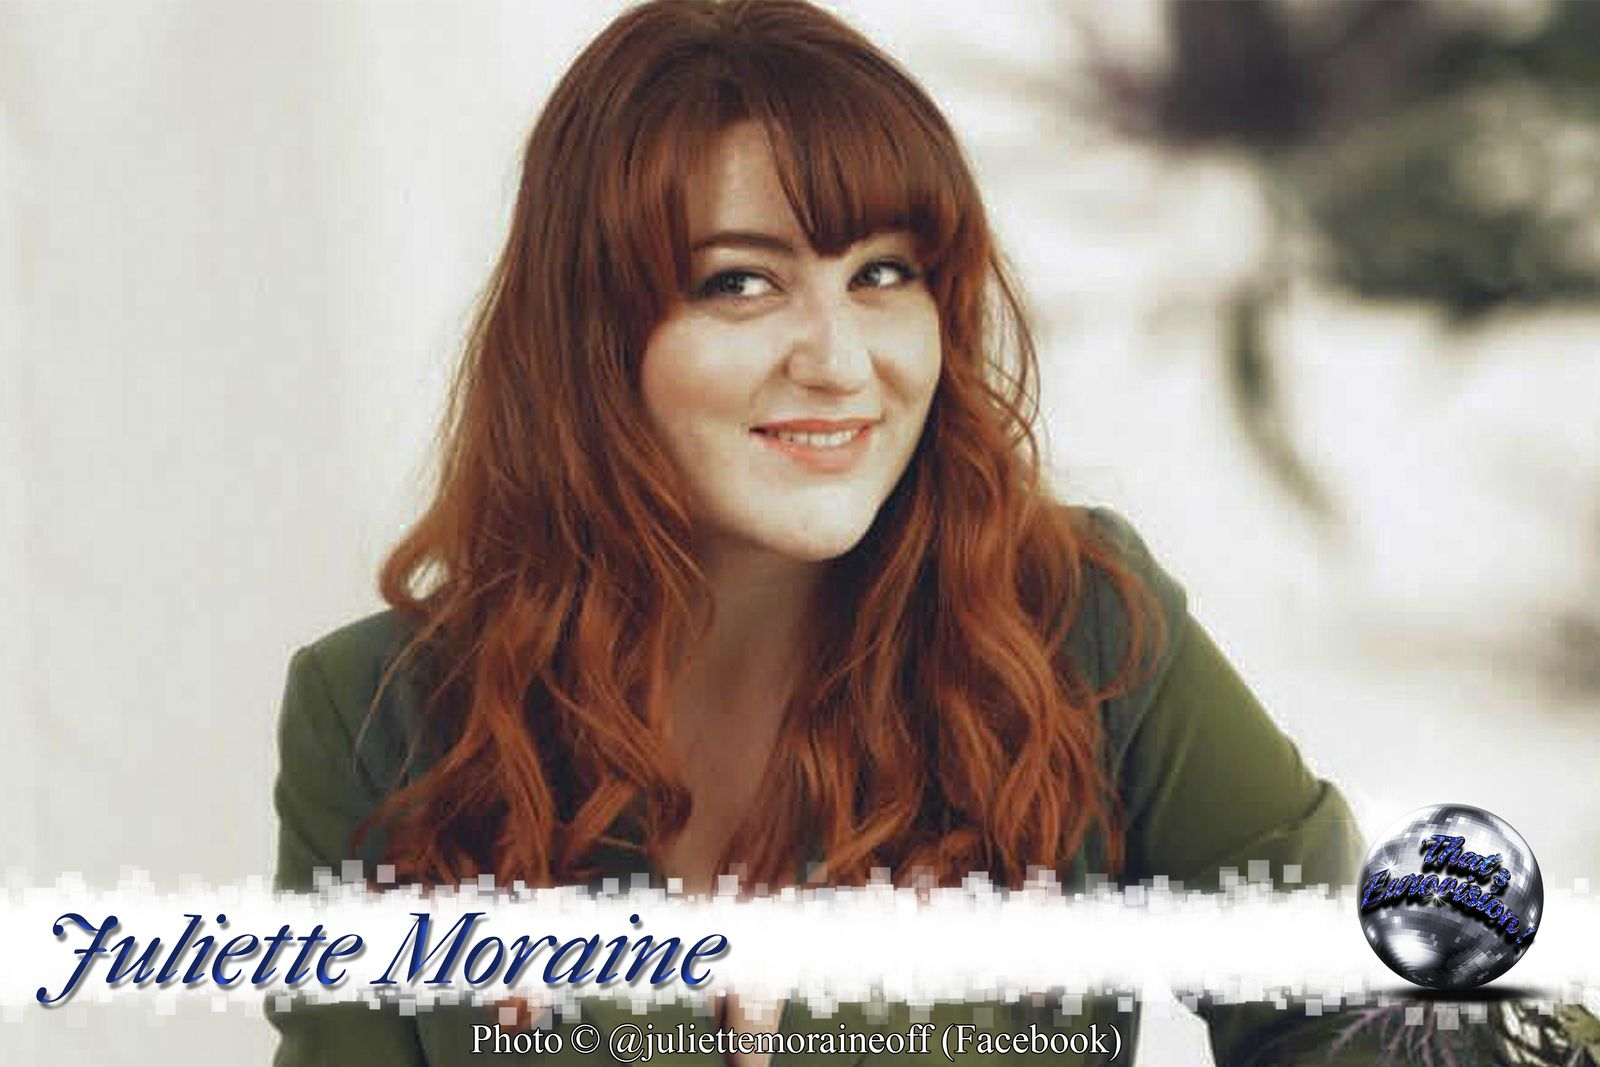 Juliette Moraine - I live to make people feel things